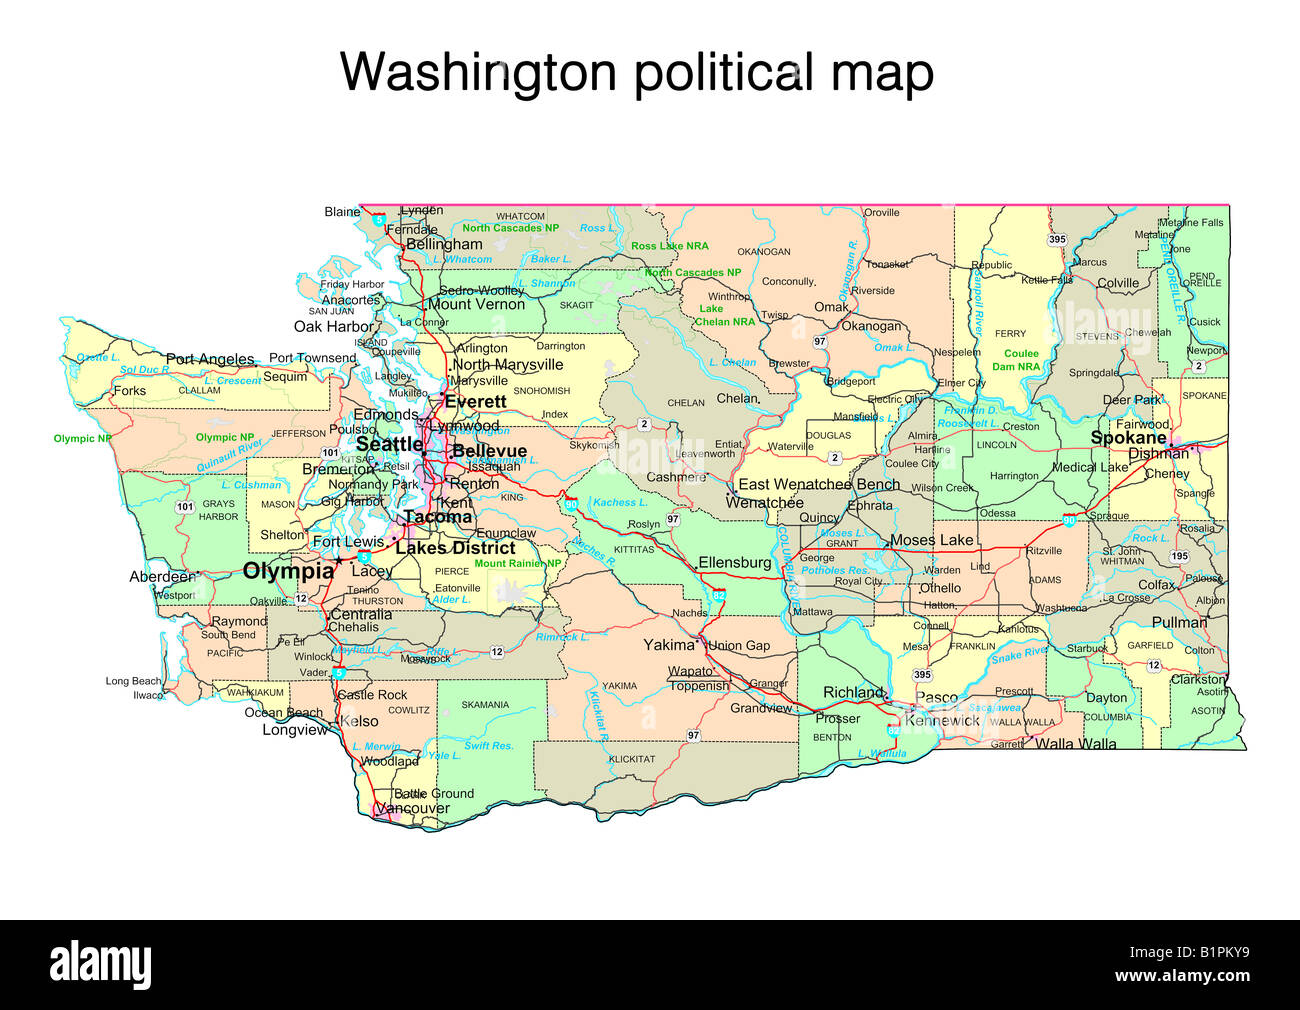 Washington state political map Stock Photo: 18323629 - Alamy